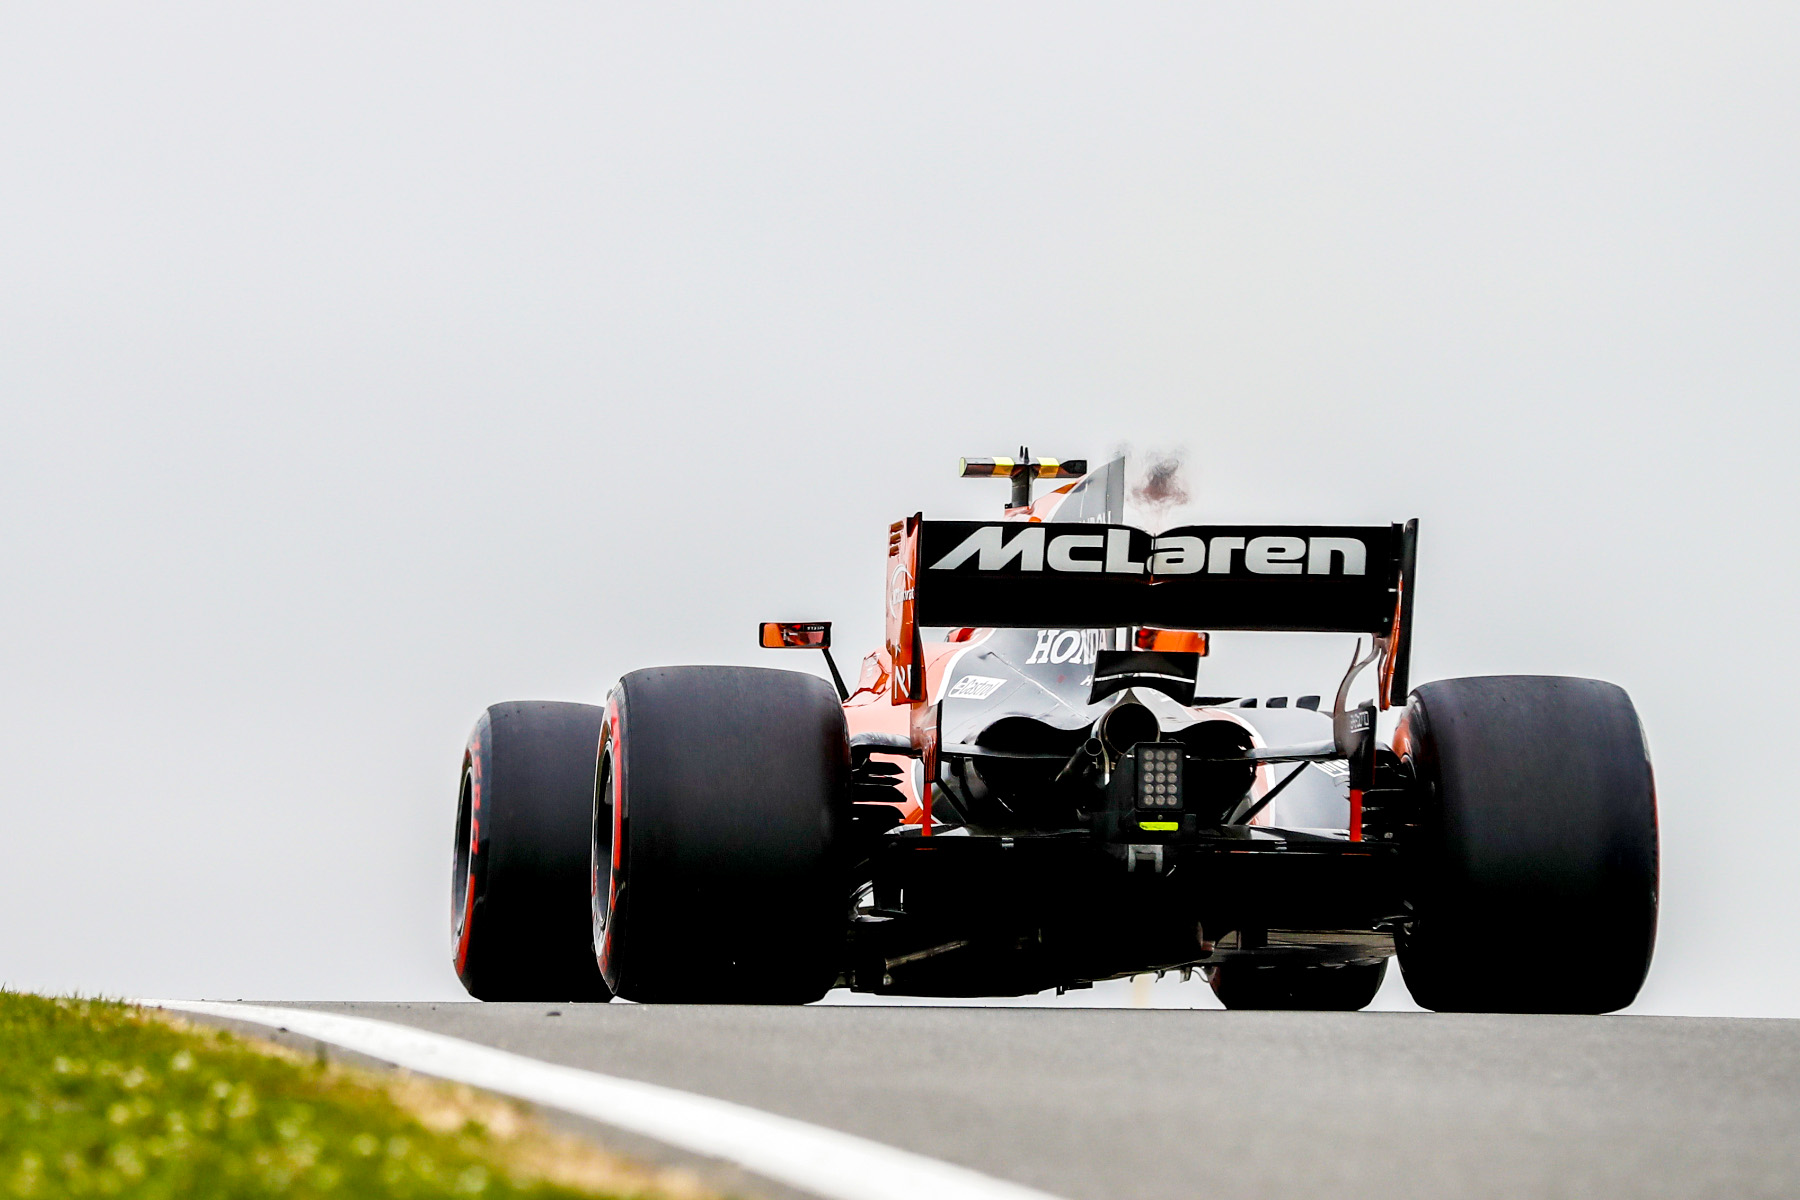 The McLaren MCL32 on the track.